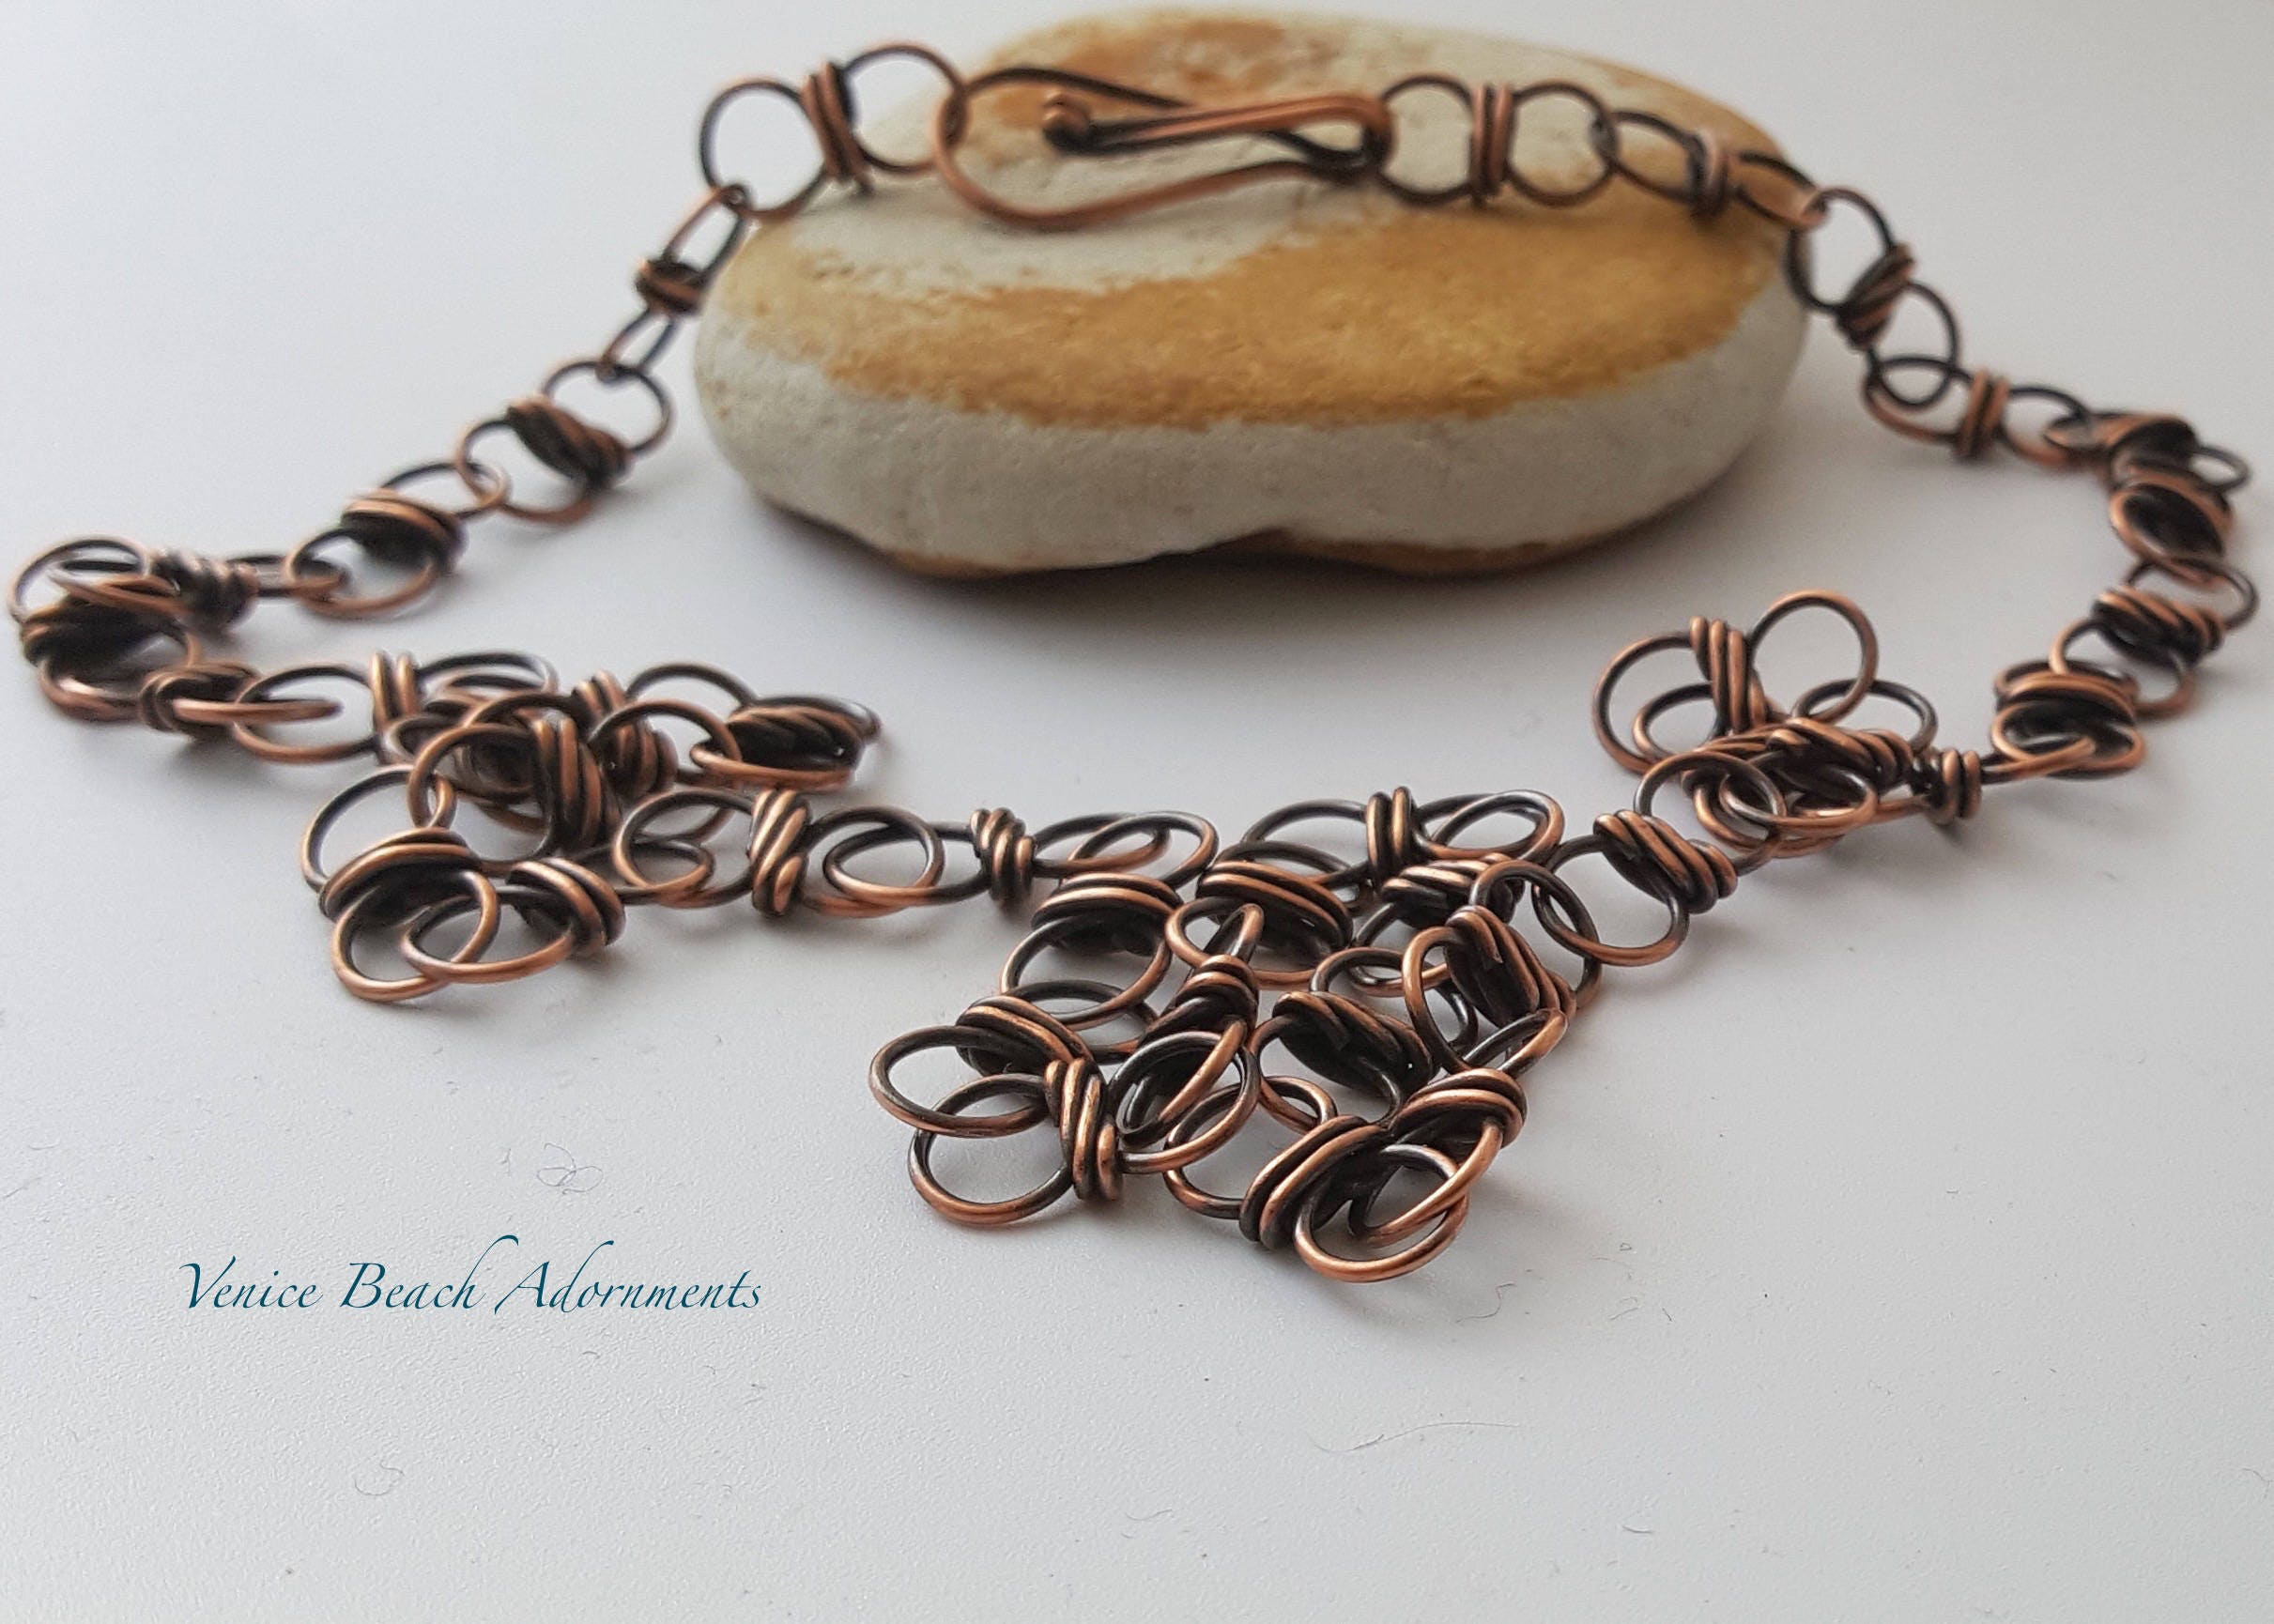 07c5fc3033a96 Handmade Solid Copper Chain Necklace with Wrapped Links